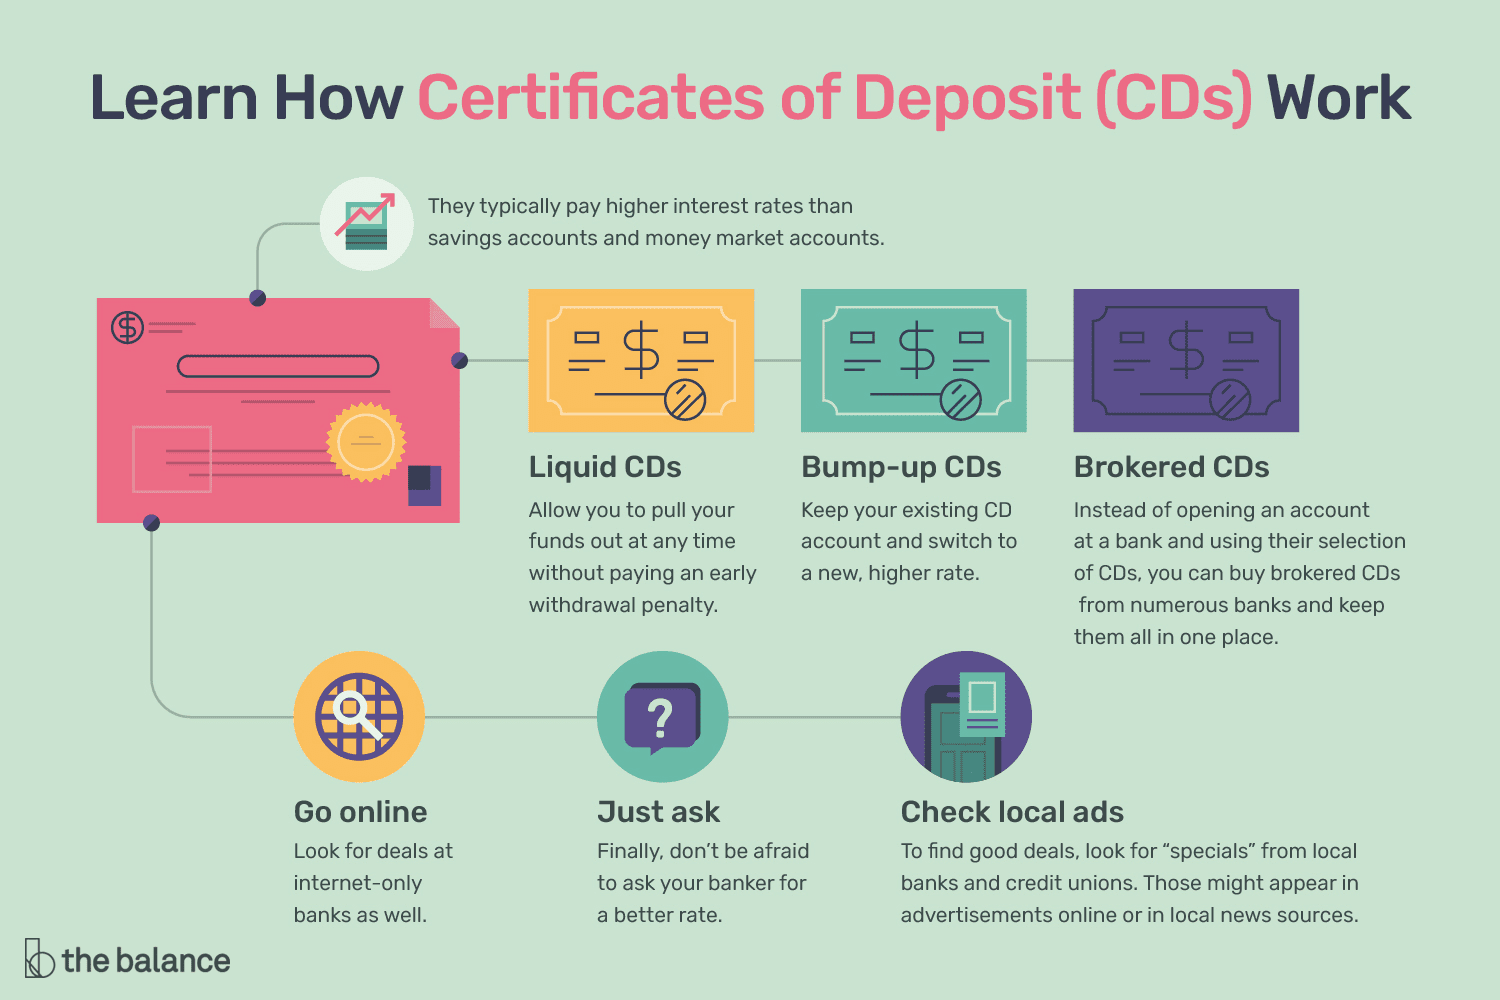 In personal finance, CD stands for certificate of deposit, which is a special type of interest-bearing account that you can open at financial institutions such as banks,